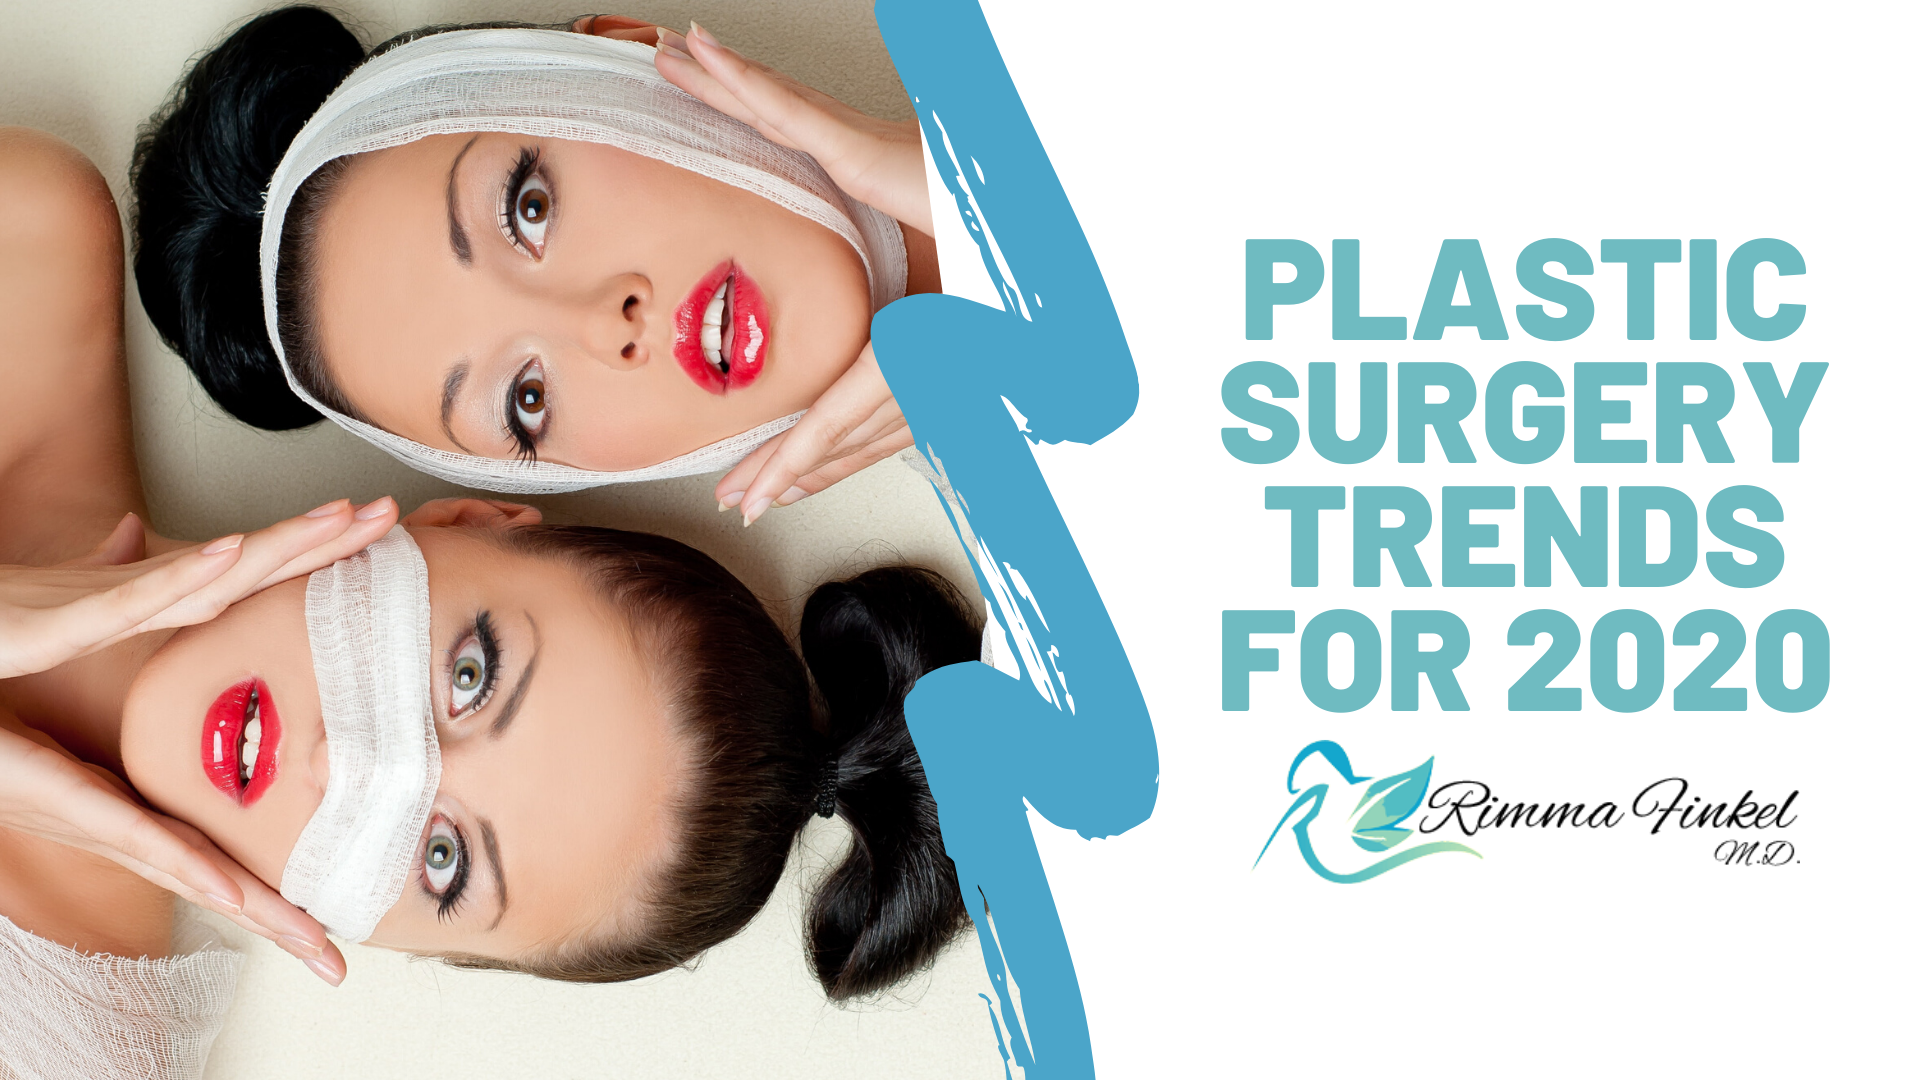 Plastic Surgery Trends for 2020